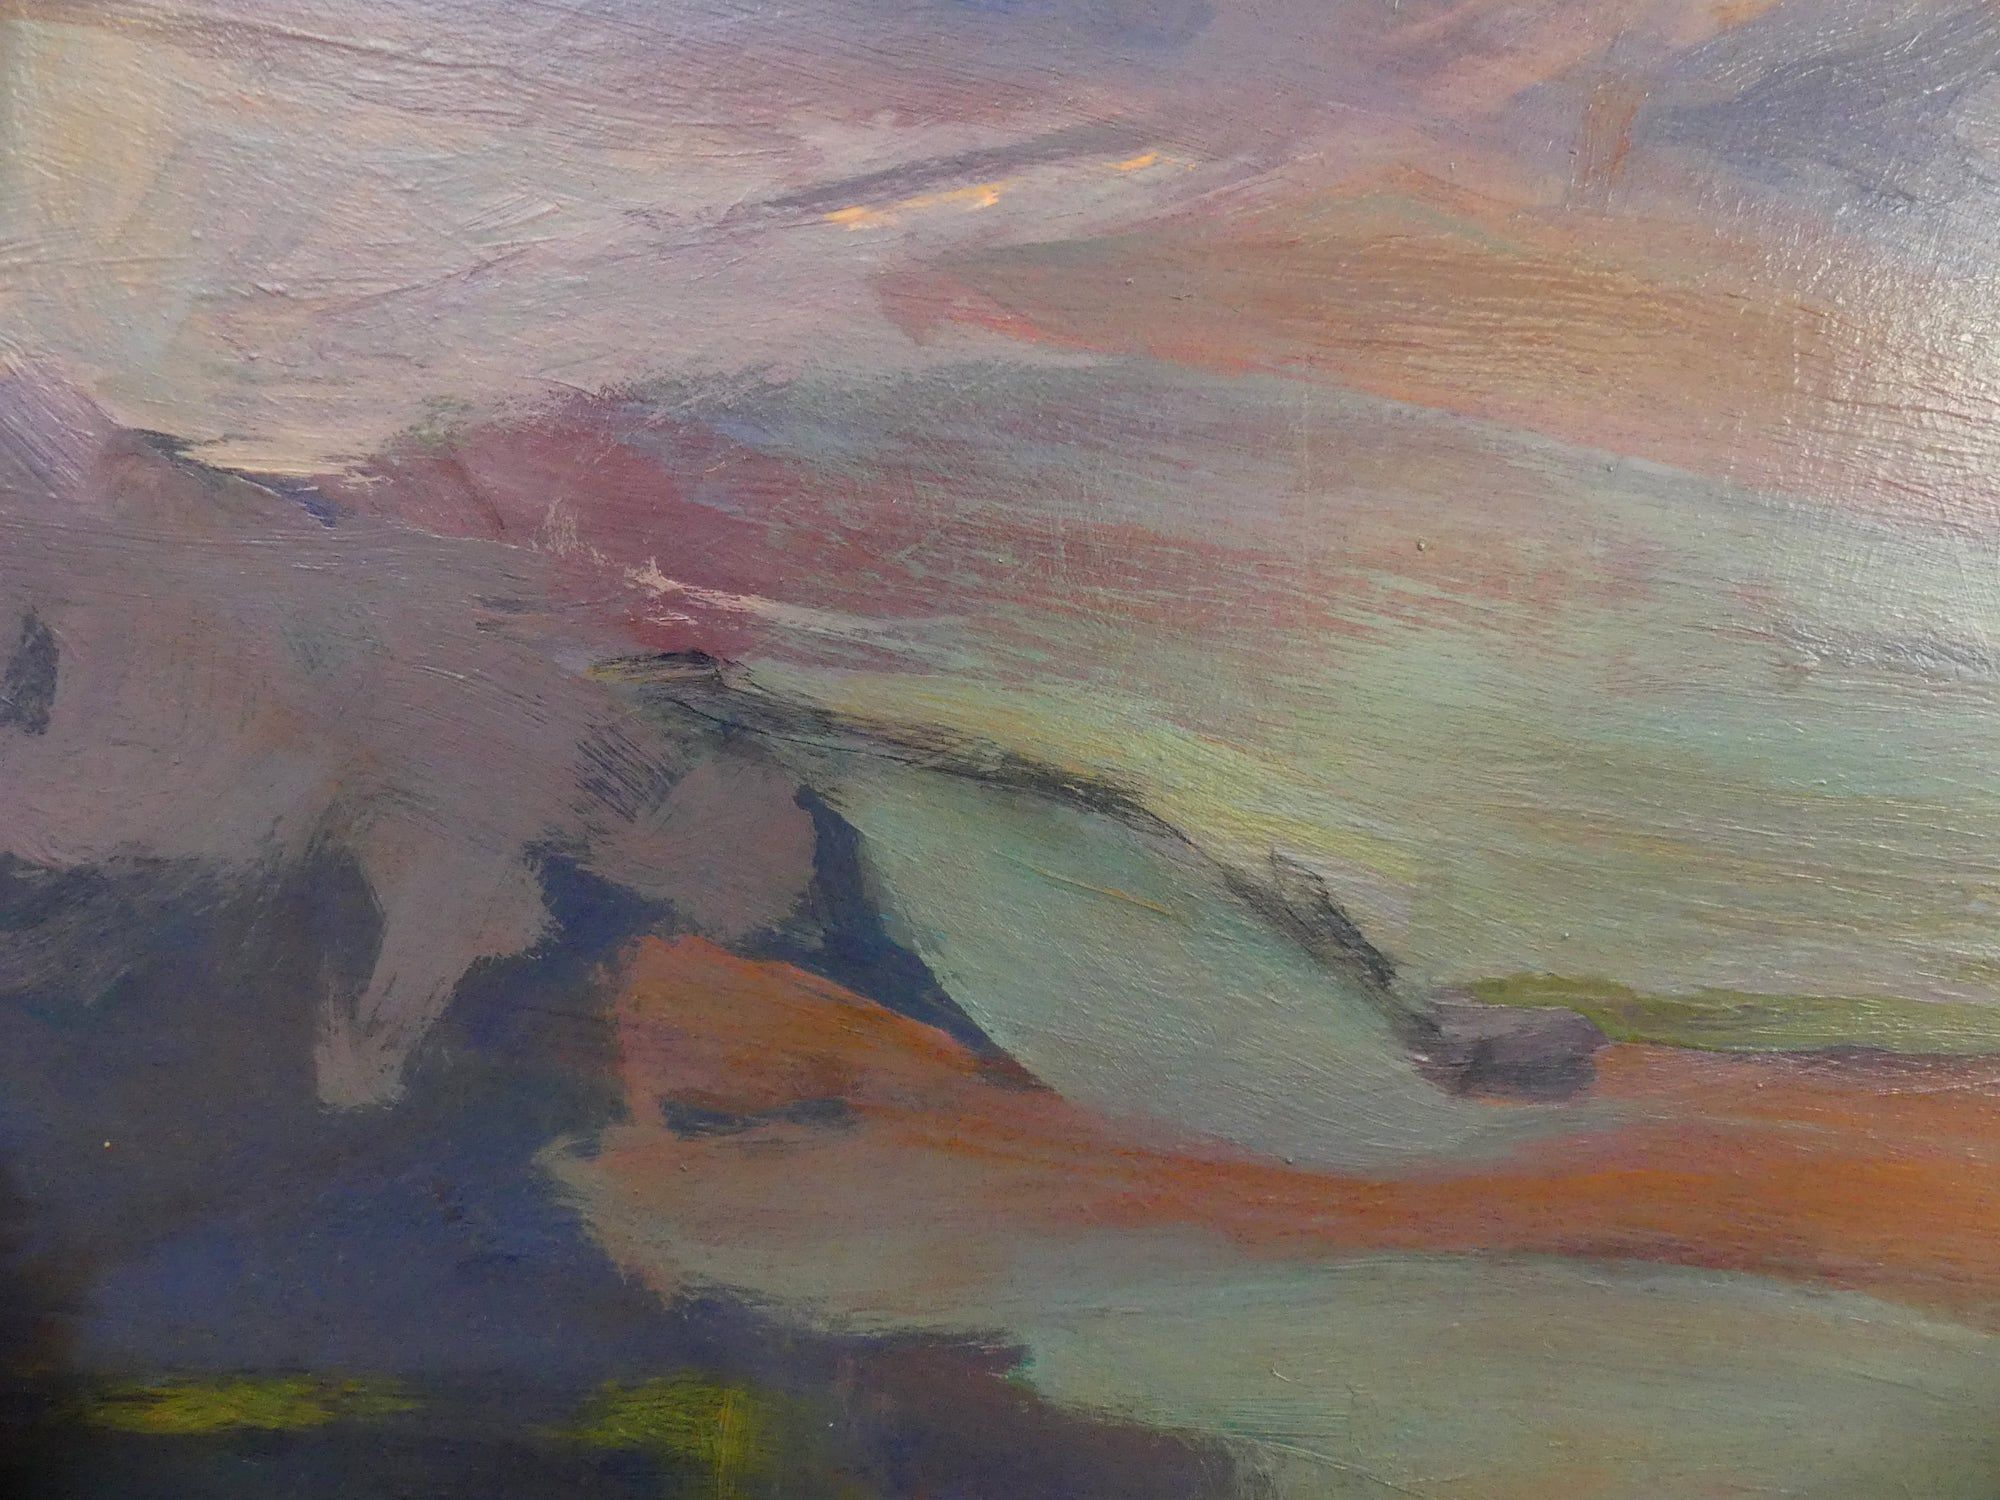 Purple landscapes,Valérie de Sarrieu,Contemporary painting, detail 3